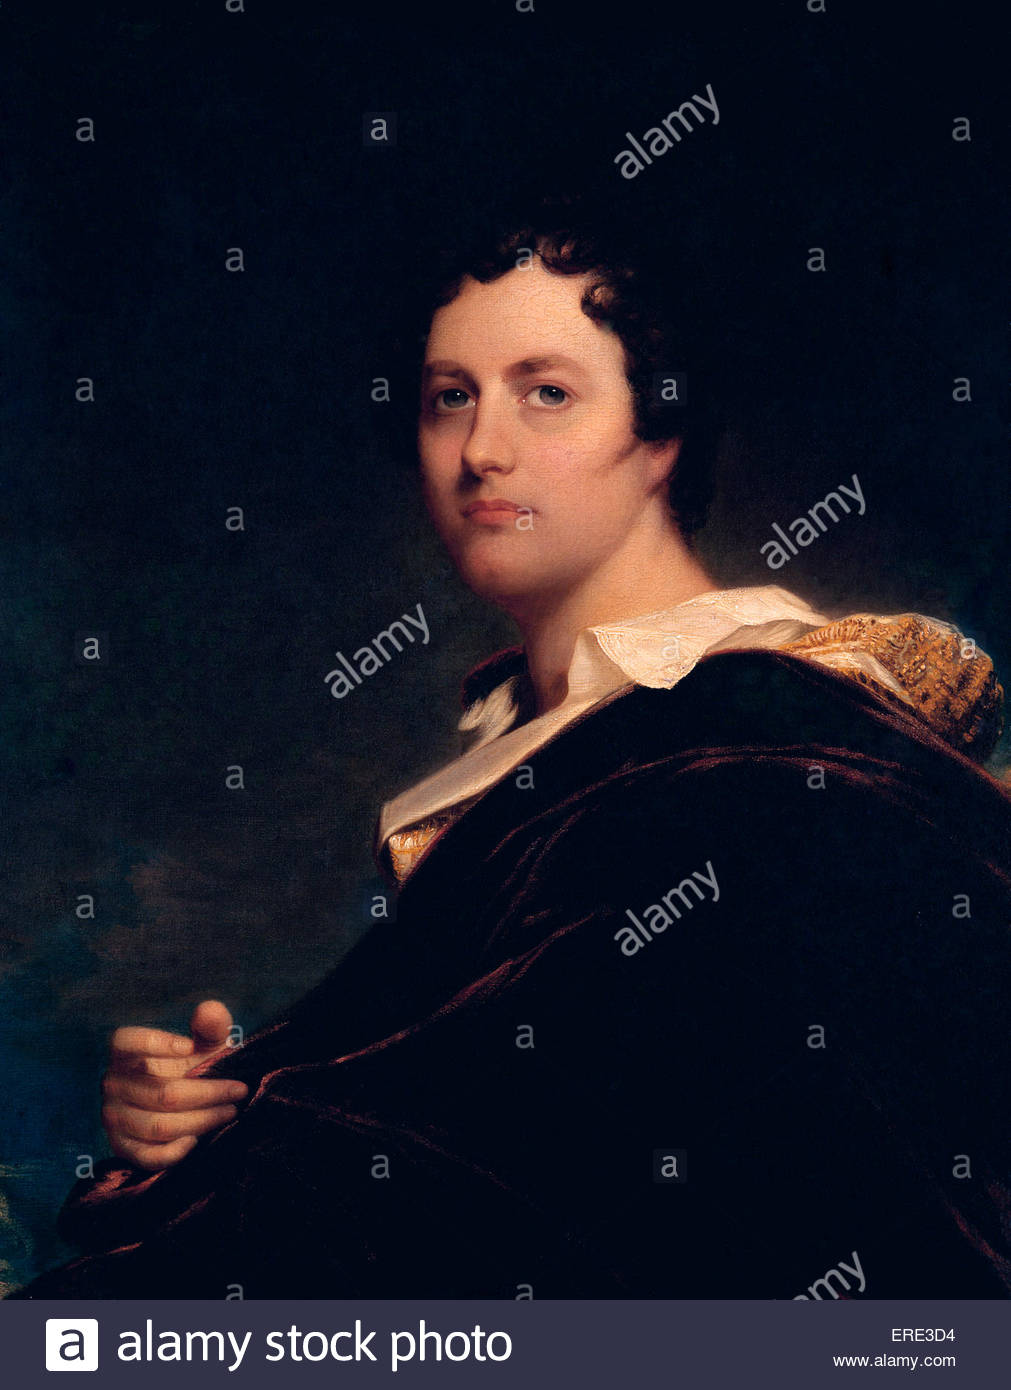 Lord Byron, oil painting by William Edward West, 1822. George Gordon Byron, 6th Lord Byron of Rochdale, British - Stock Image